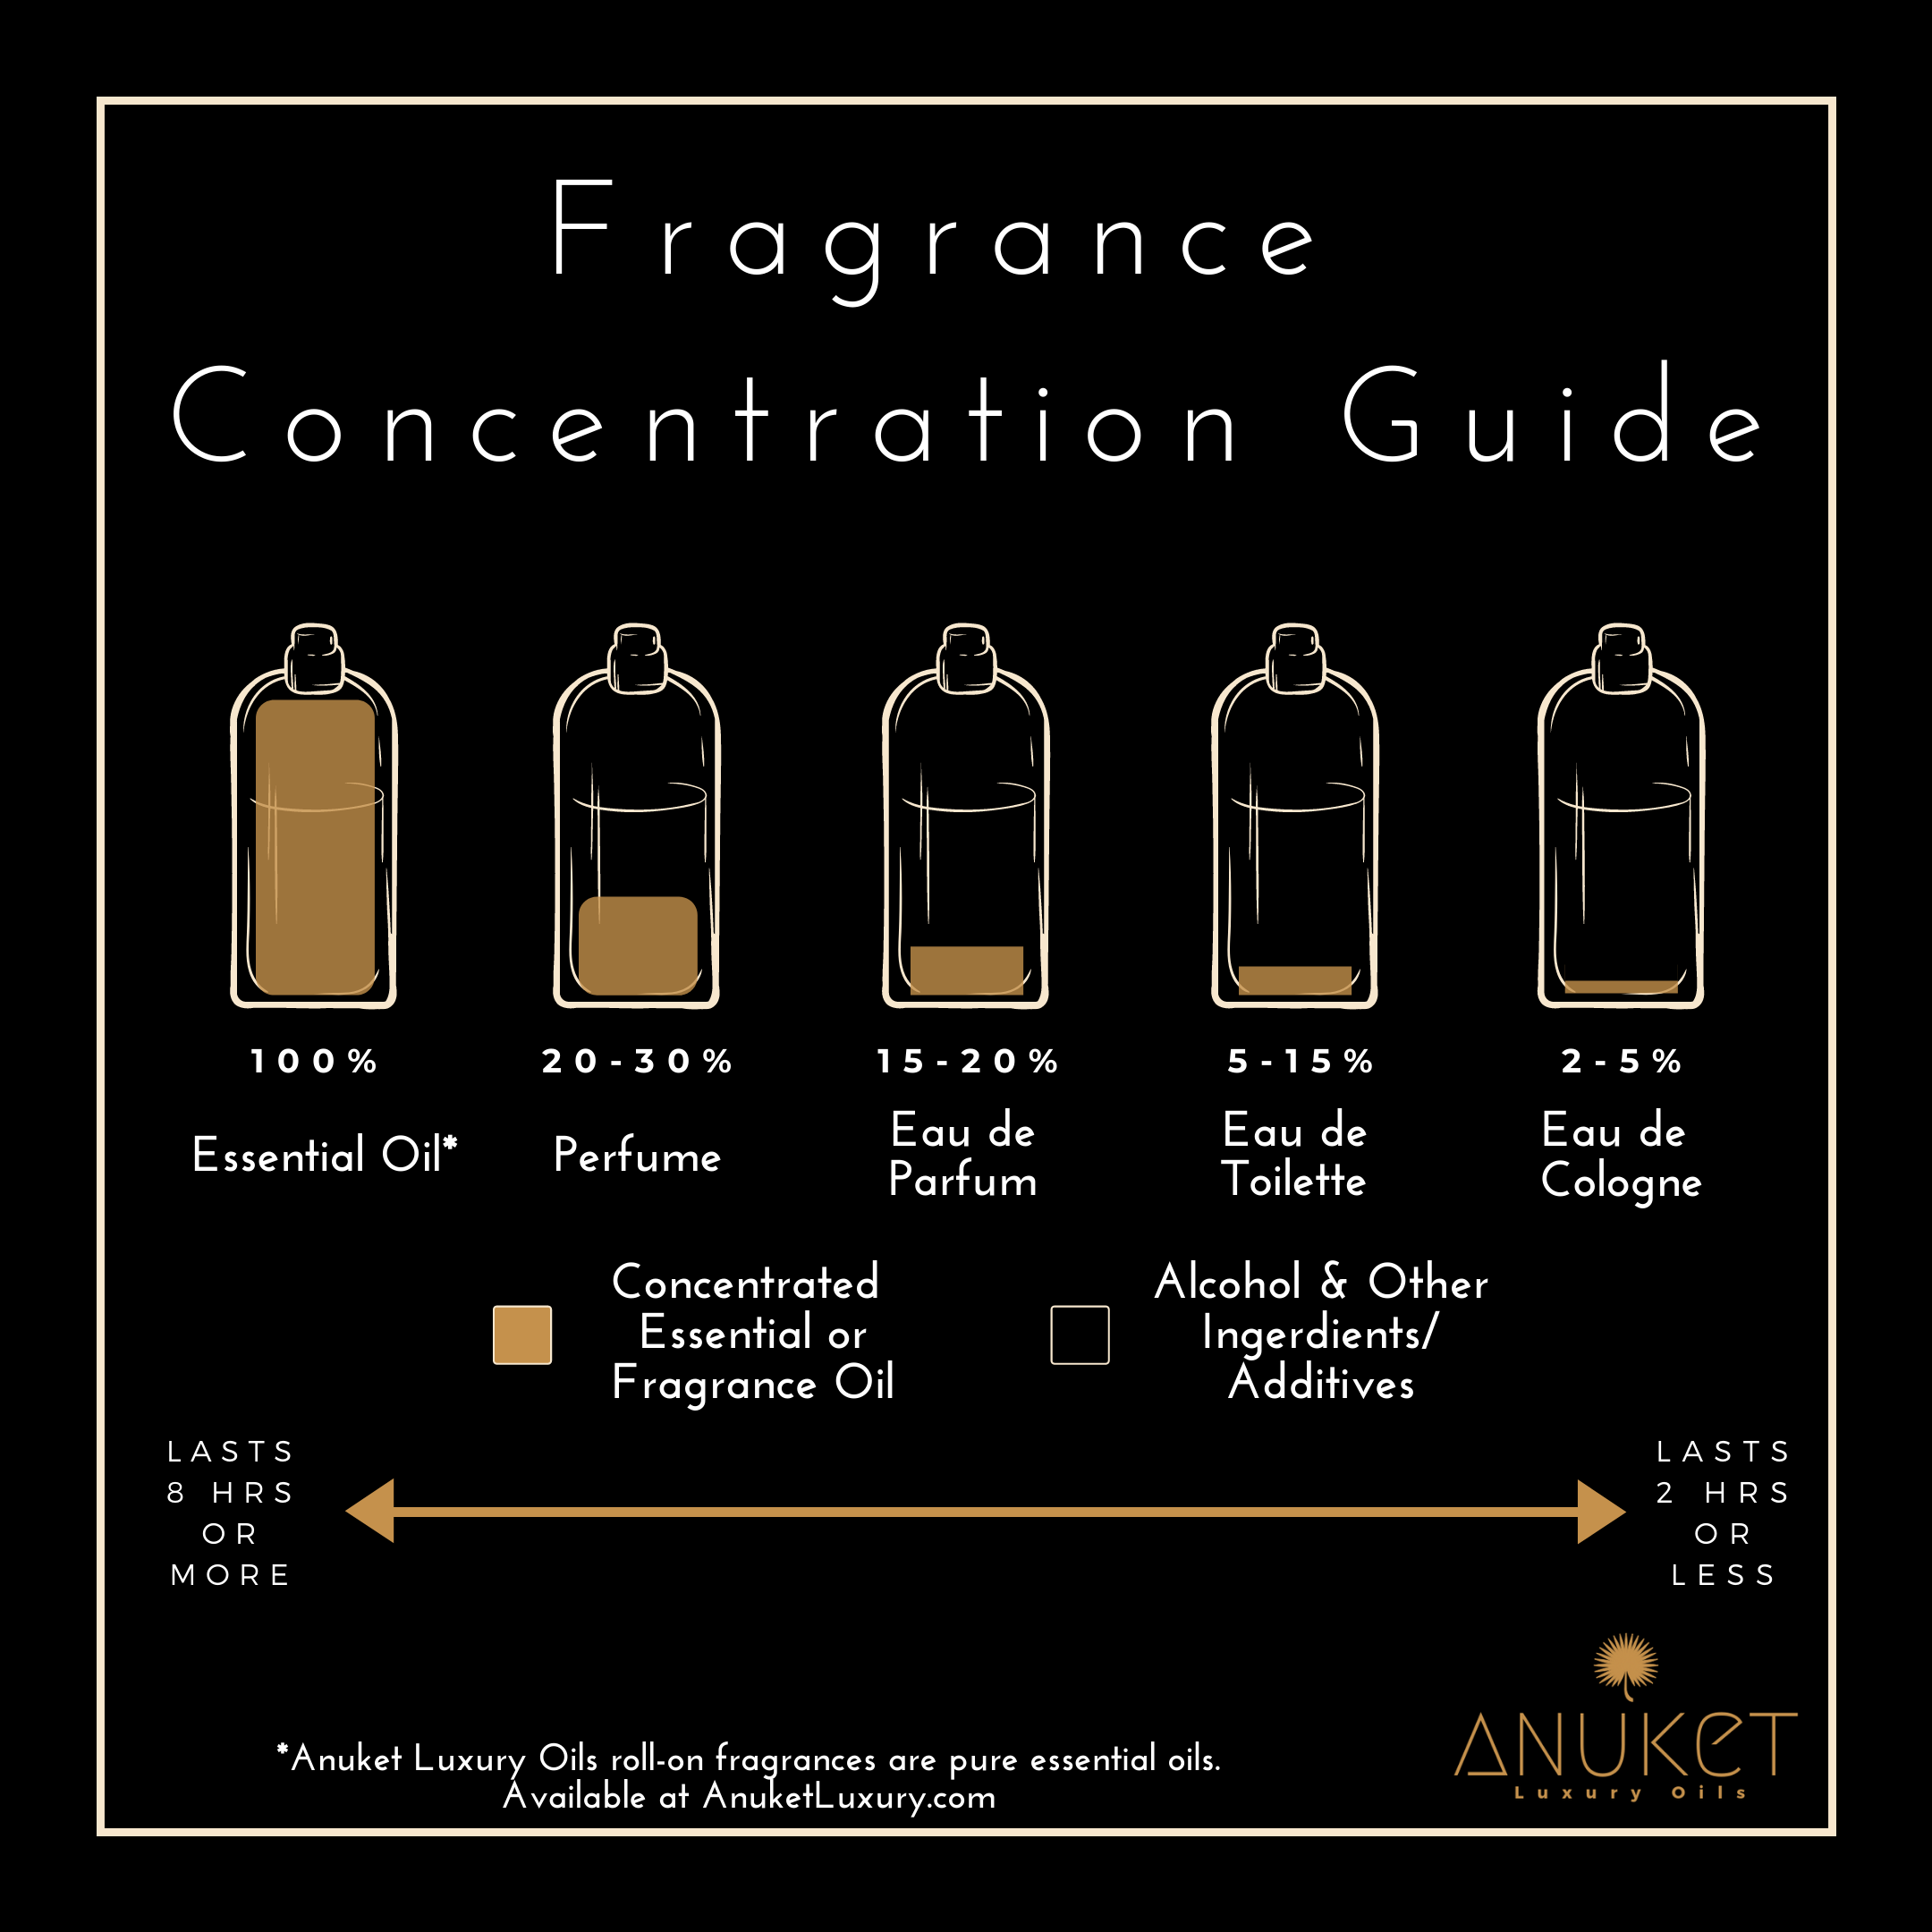 Fragrance Concentration Guide by Anuket Luxury Oils showing percent oil concentrations and how long scent lasts on skin for essential oils, perfume, eau de parfum, eau de toilette, and eau de cologne.